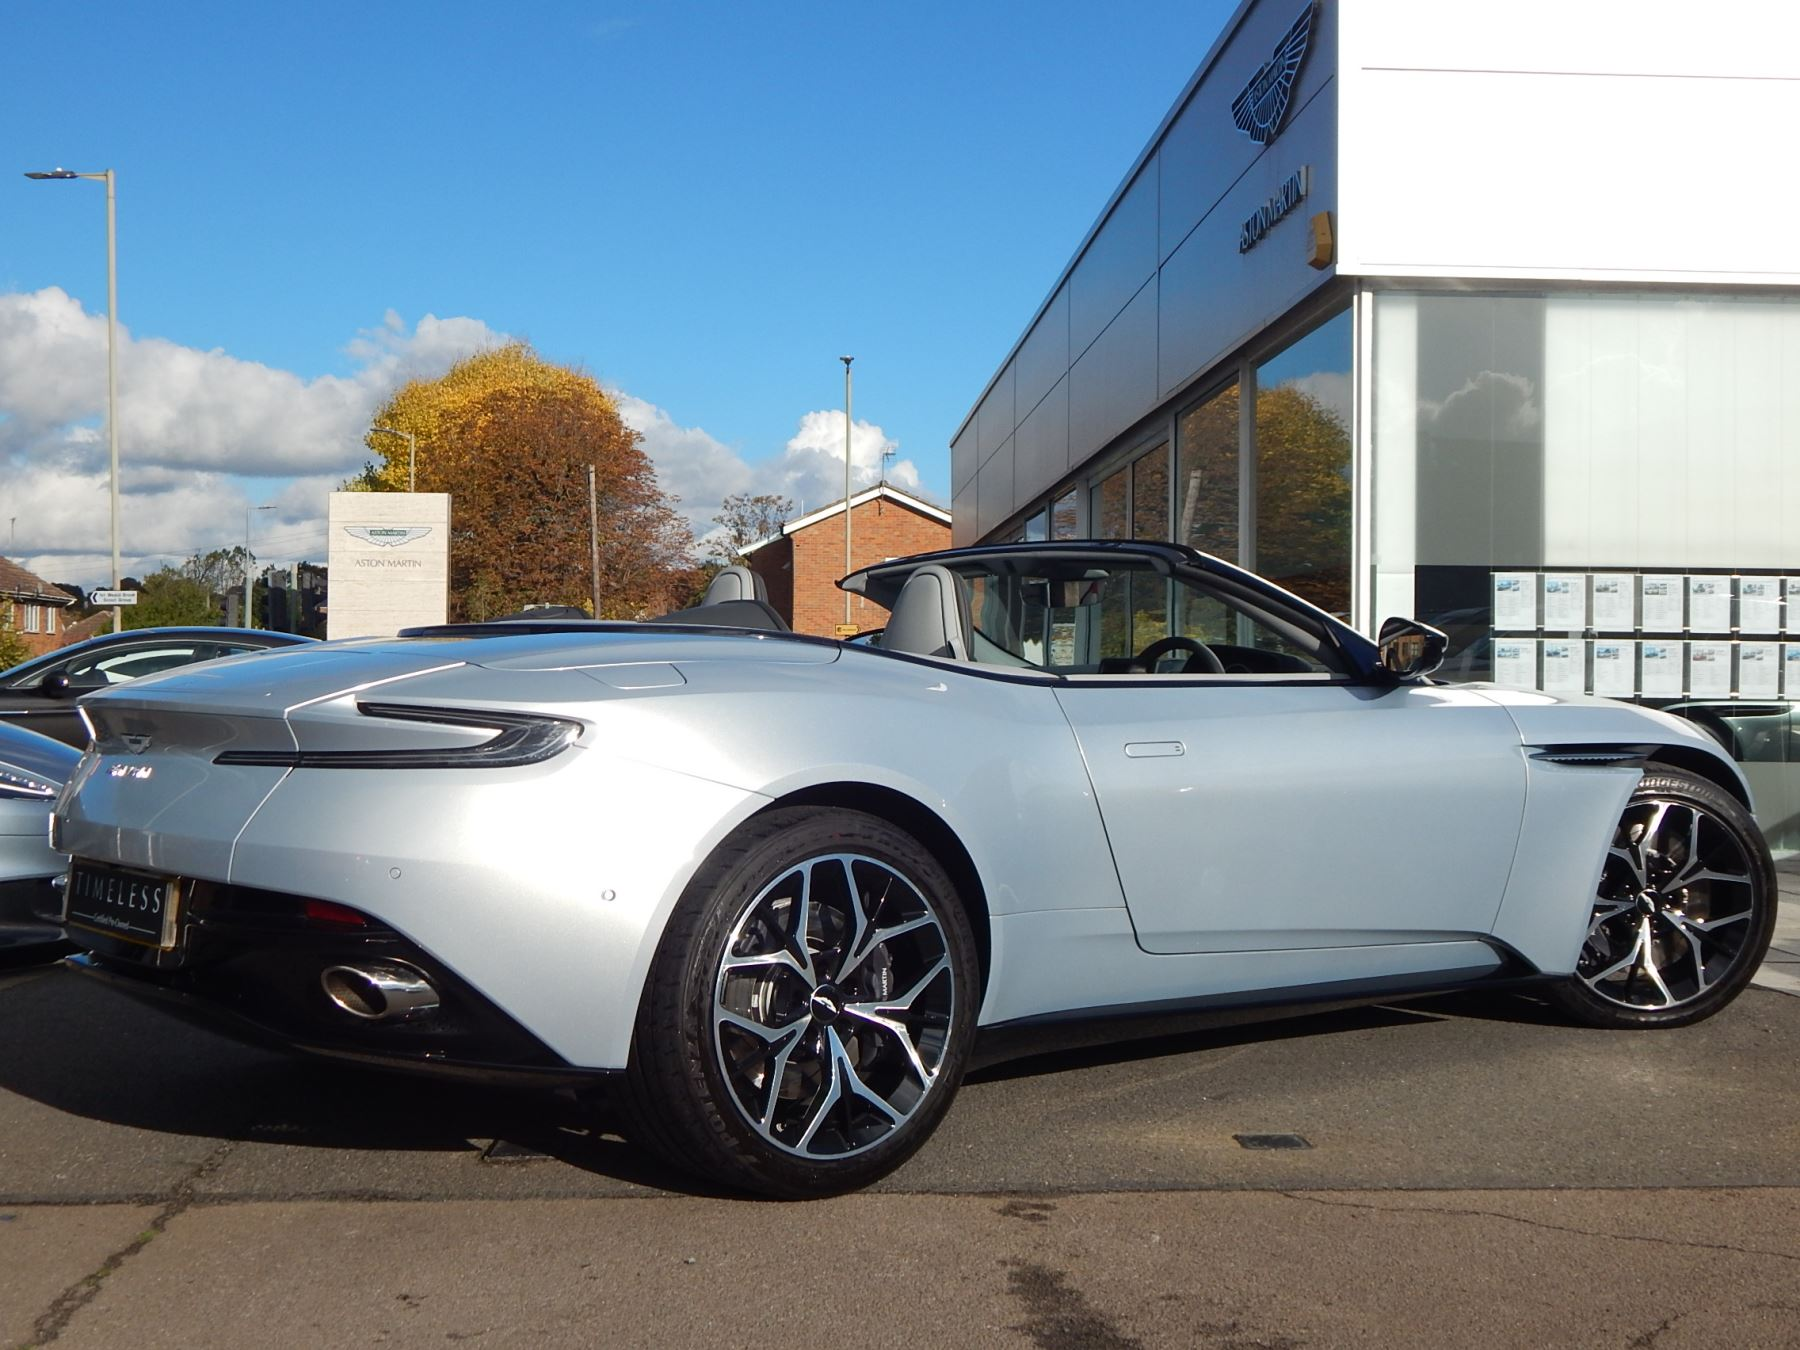 Aston Martin DB11 Volante 4.0 V8 Twin Turbo image 22